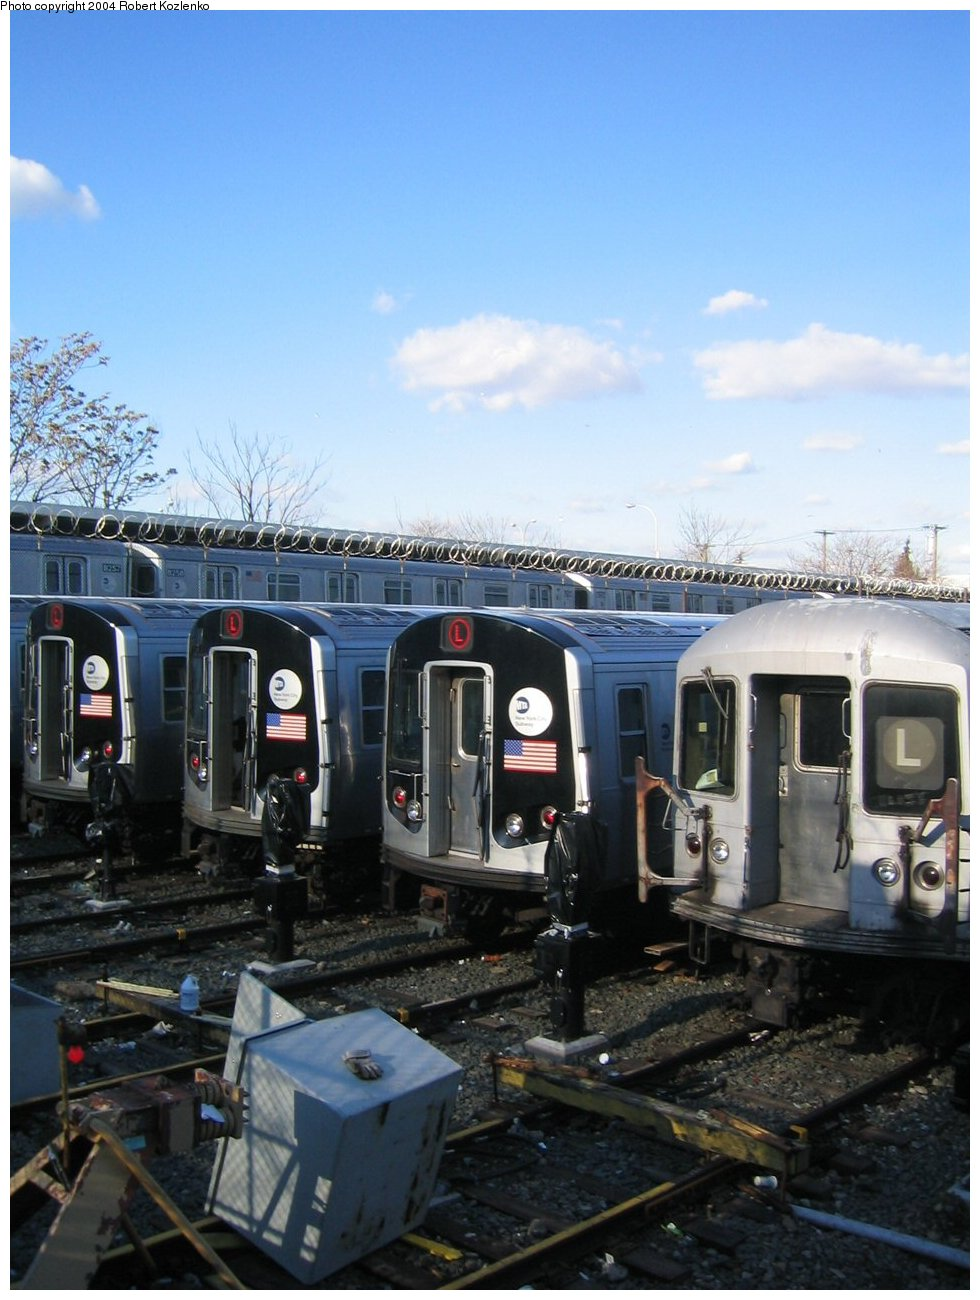 (215k, 980x1300)<br><b>Country:</b> United States<br><b>City:</b> New York<br><b>System:</b> New York City Transit<br><b>Location:</b> Rockaway Parkway (Canarsie) Yard<br><b>Car:</b> R-143 (Kawasaki, 2001-2002)  <br><b>Photo by:</b> Robert Kozlenko<br><b>Date:</b> 11/26/2004<br><b>Viewed (this week/total):</b> 5 / 4305